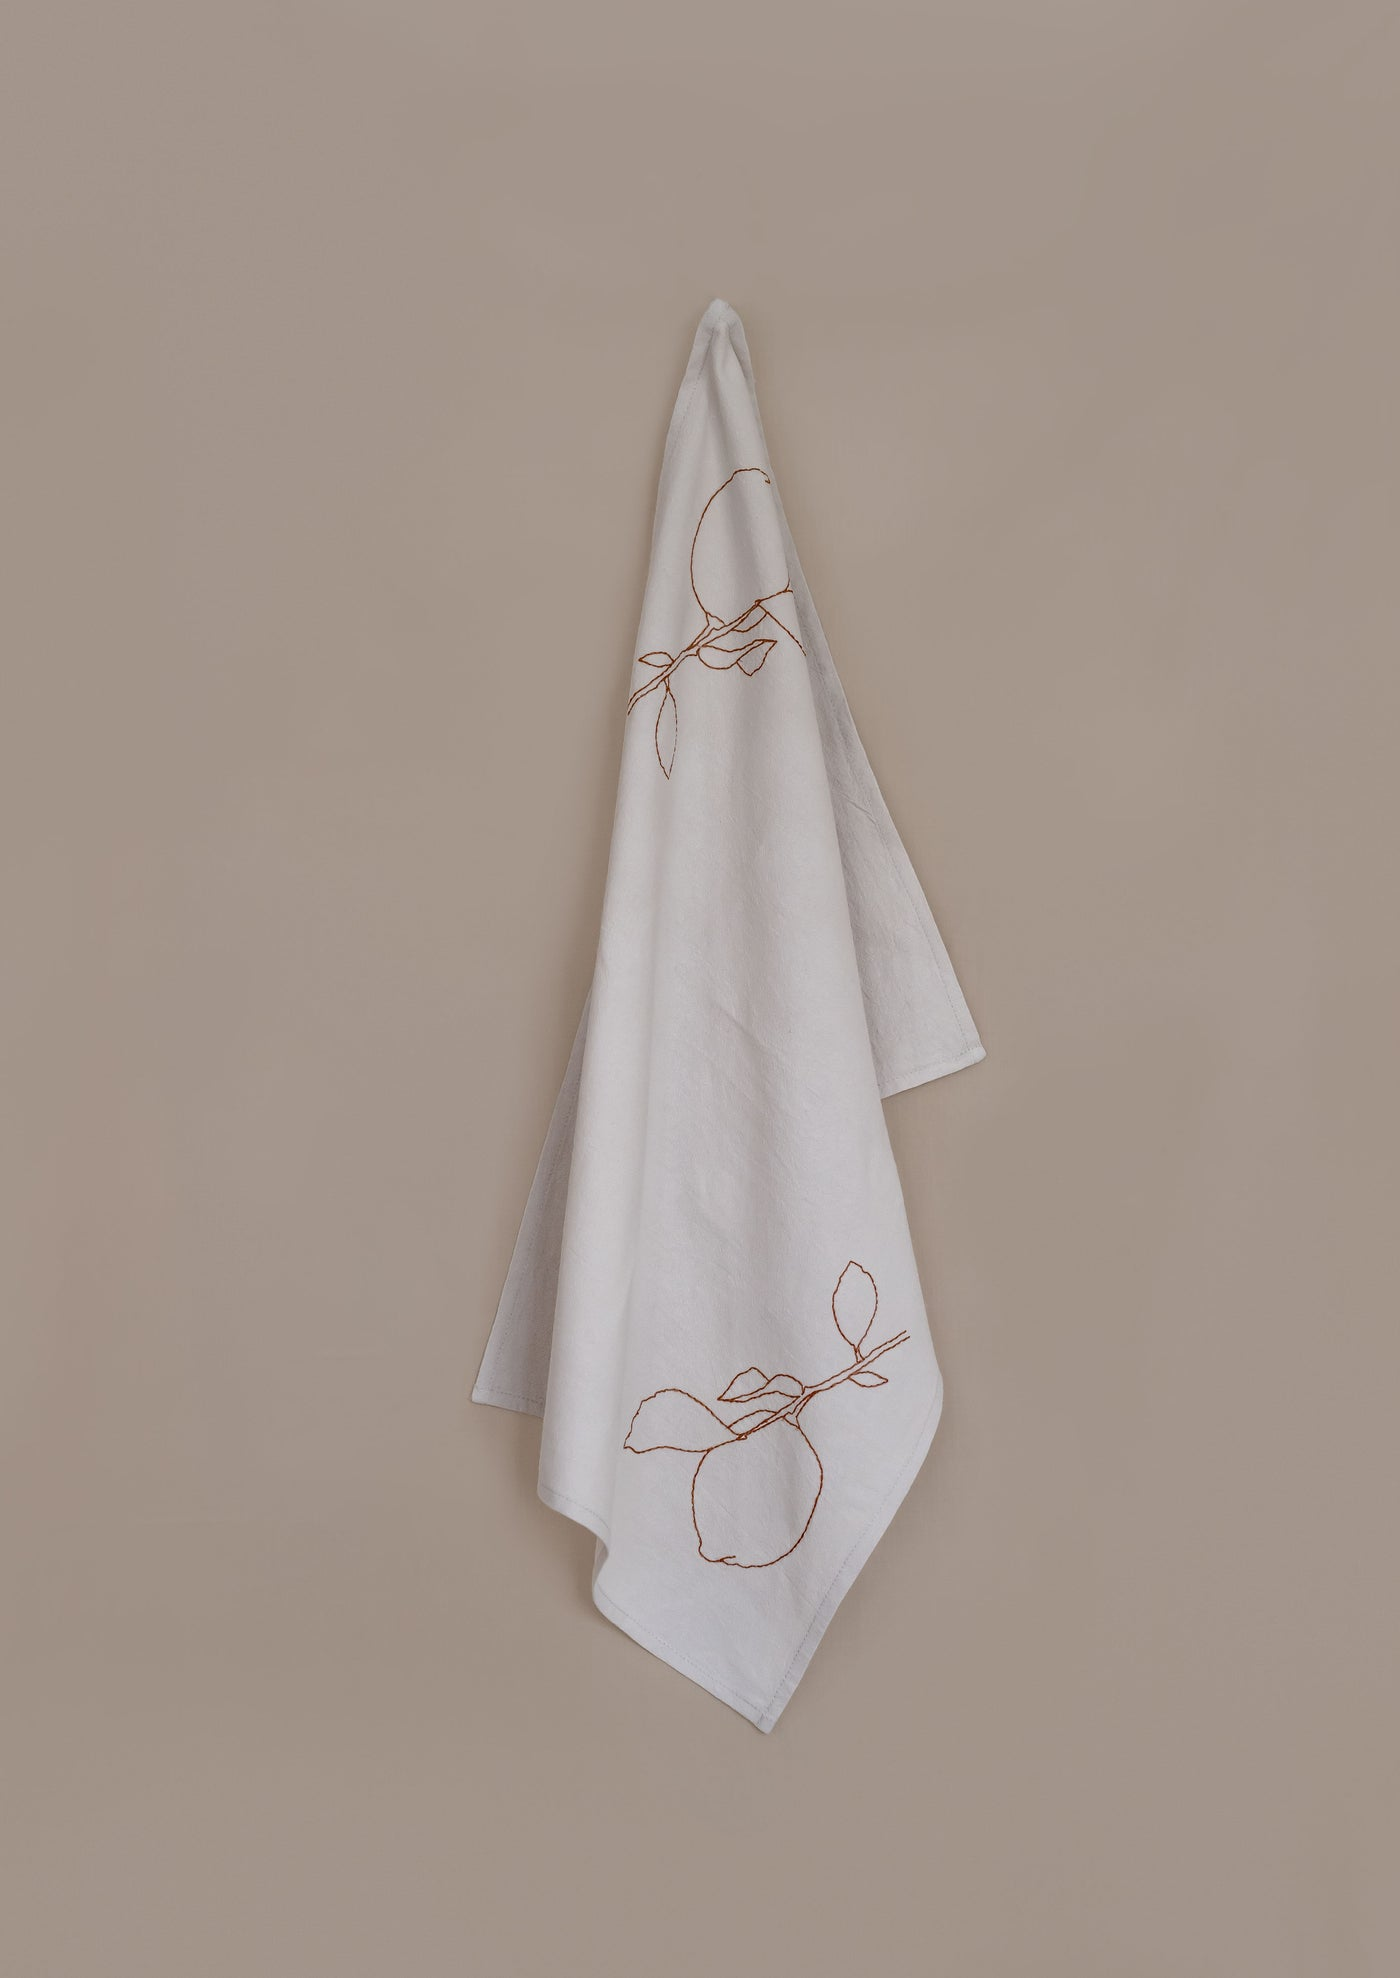 Tea Towel ¦ Neutral ¦ Lemon Branch Embroidery